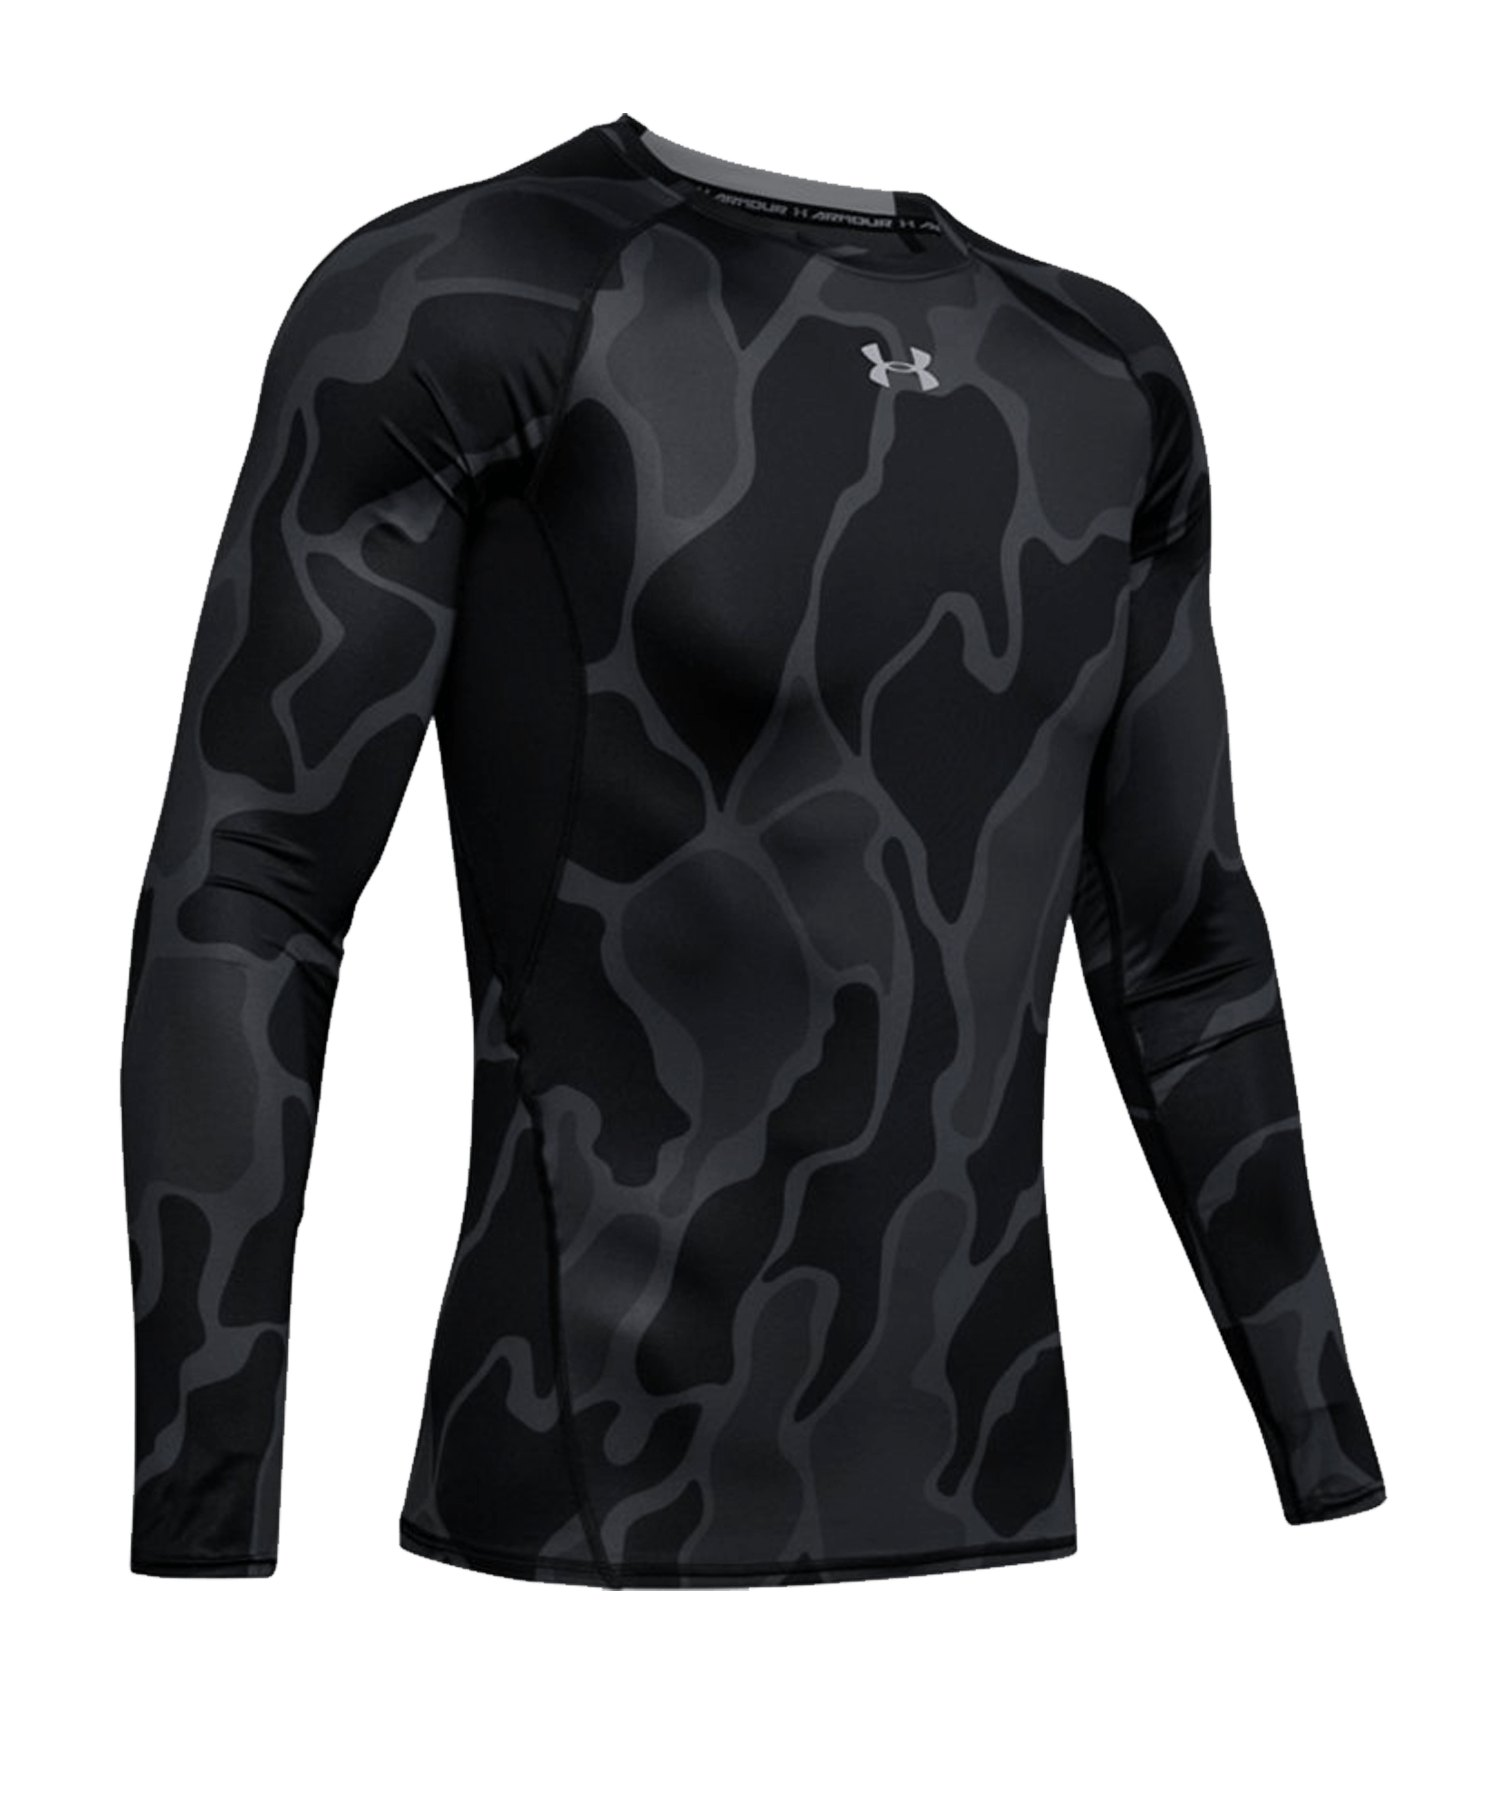 Under Armour Heatgear Longsleeve Shirt F002 - schwarz